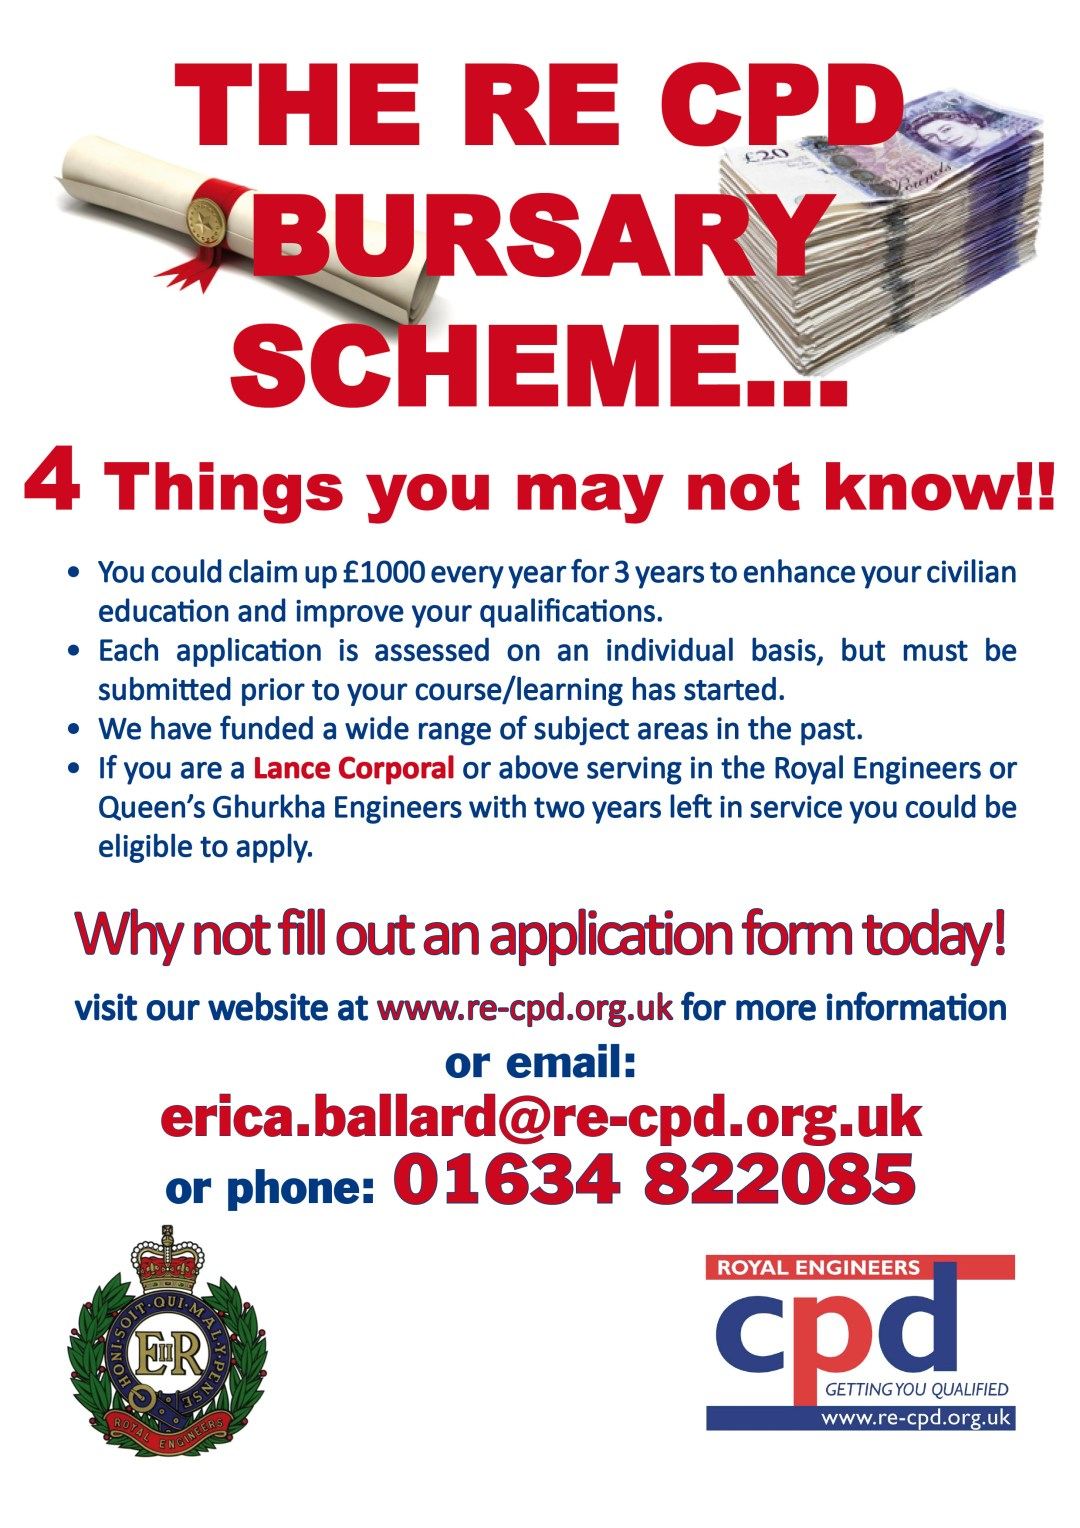 The RE CPD Bursary Scheme – 4 Things you may not know!